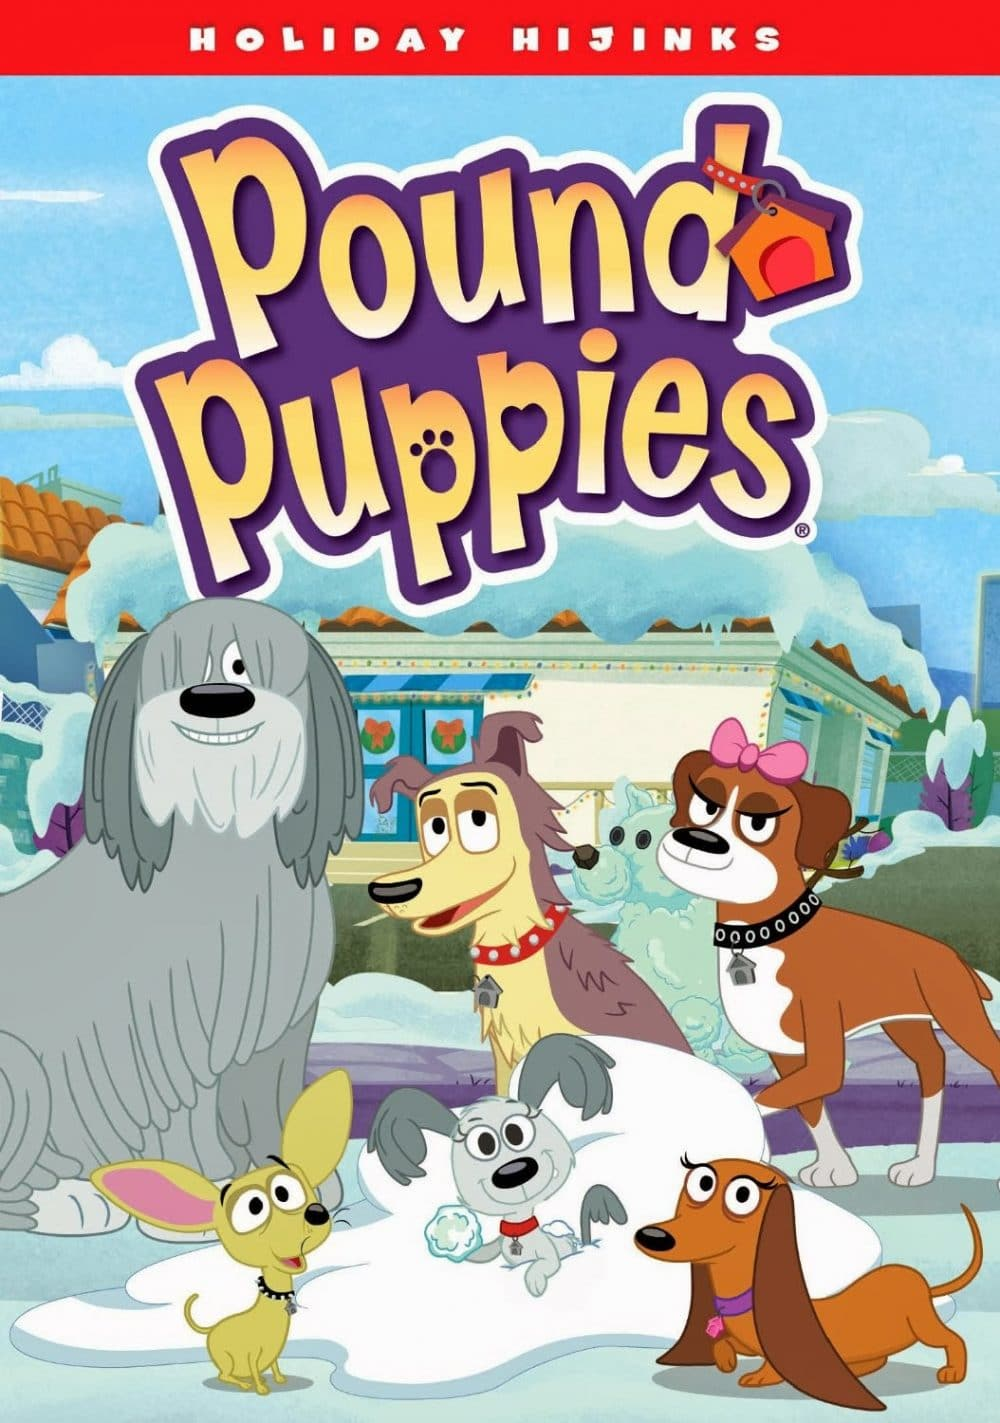 Pound Puppies Holiday Hijinks Family Food And Travel